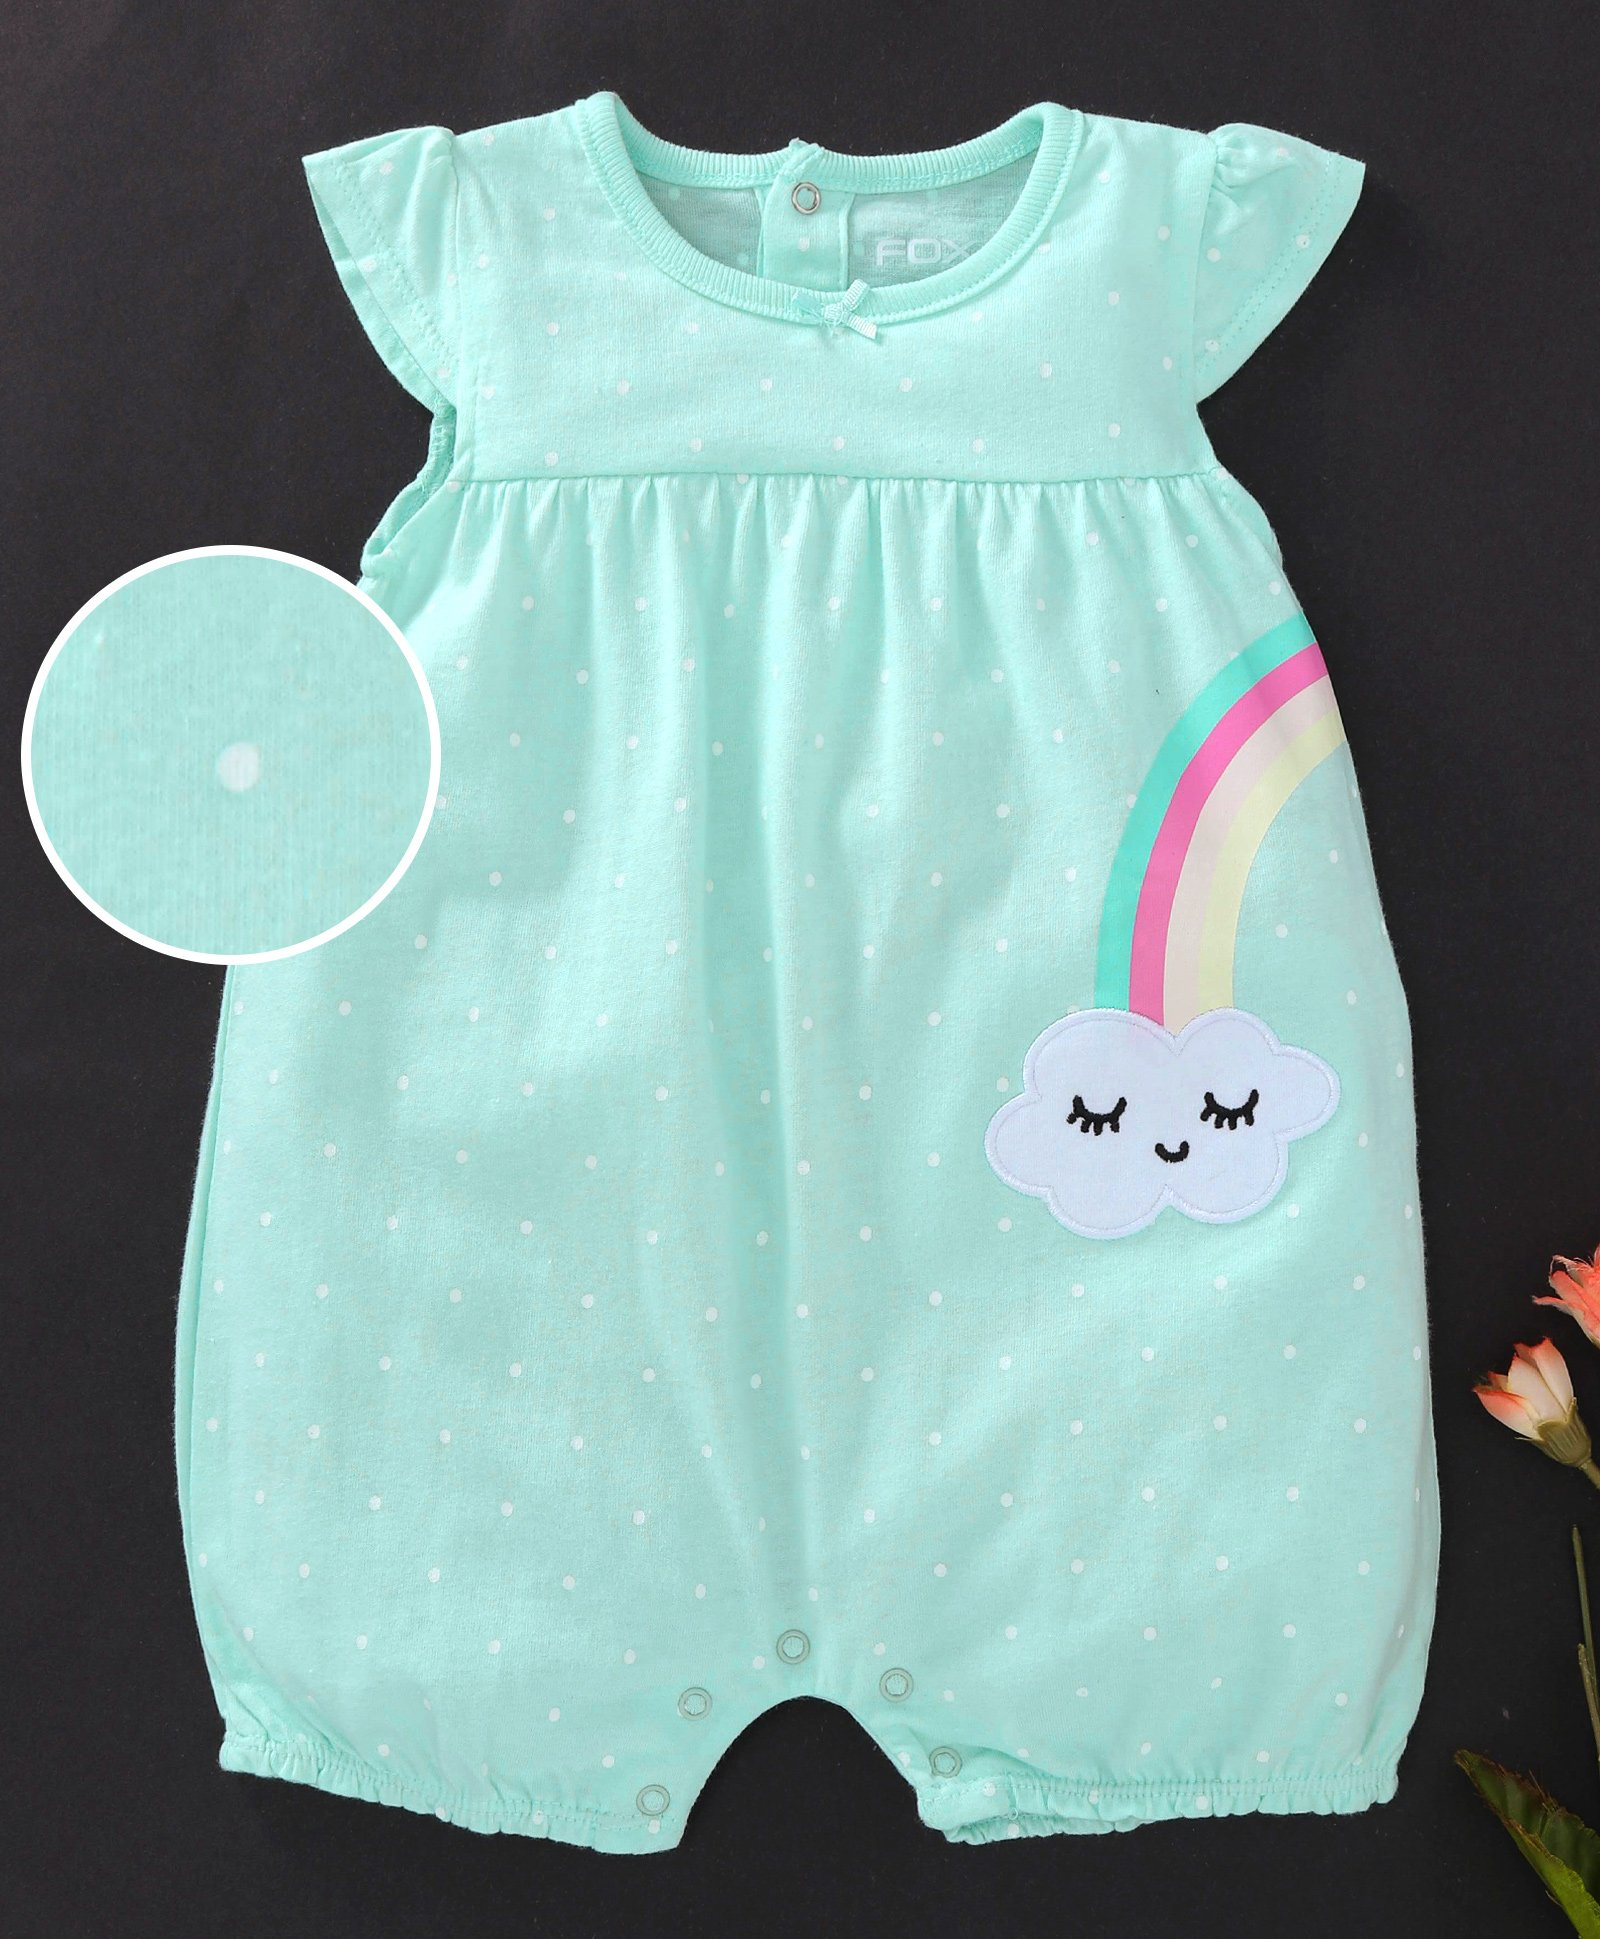 def0b8111 Buy Fox Baby Cap Sleeves Romper Cloud Embroidery Mint Green for ...